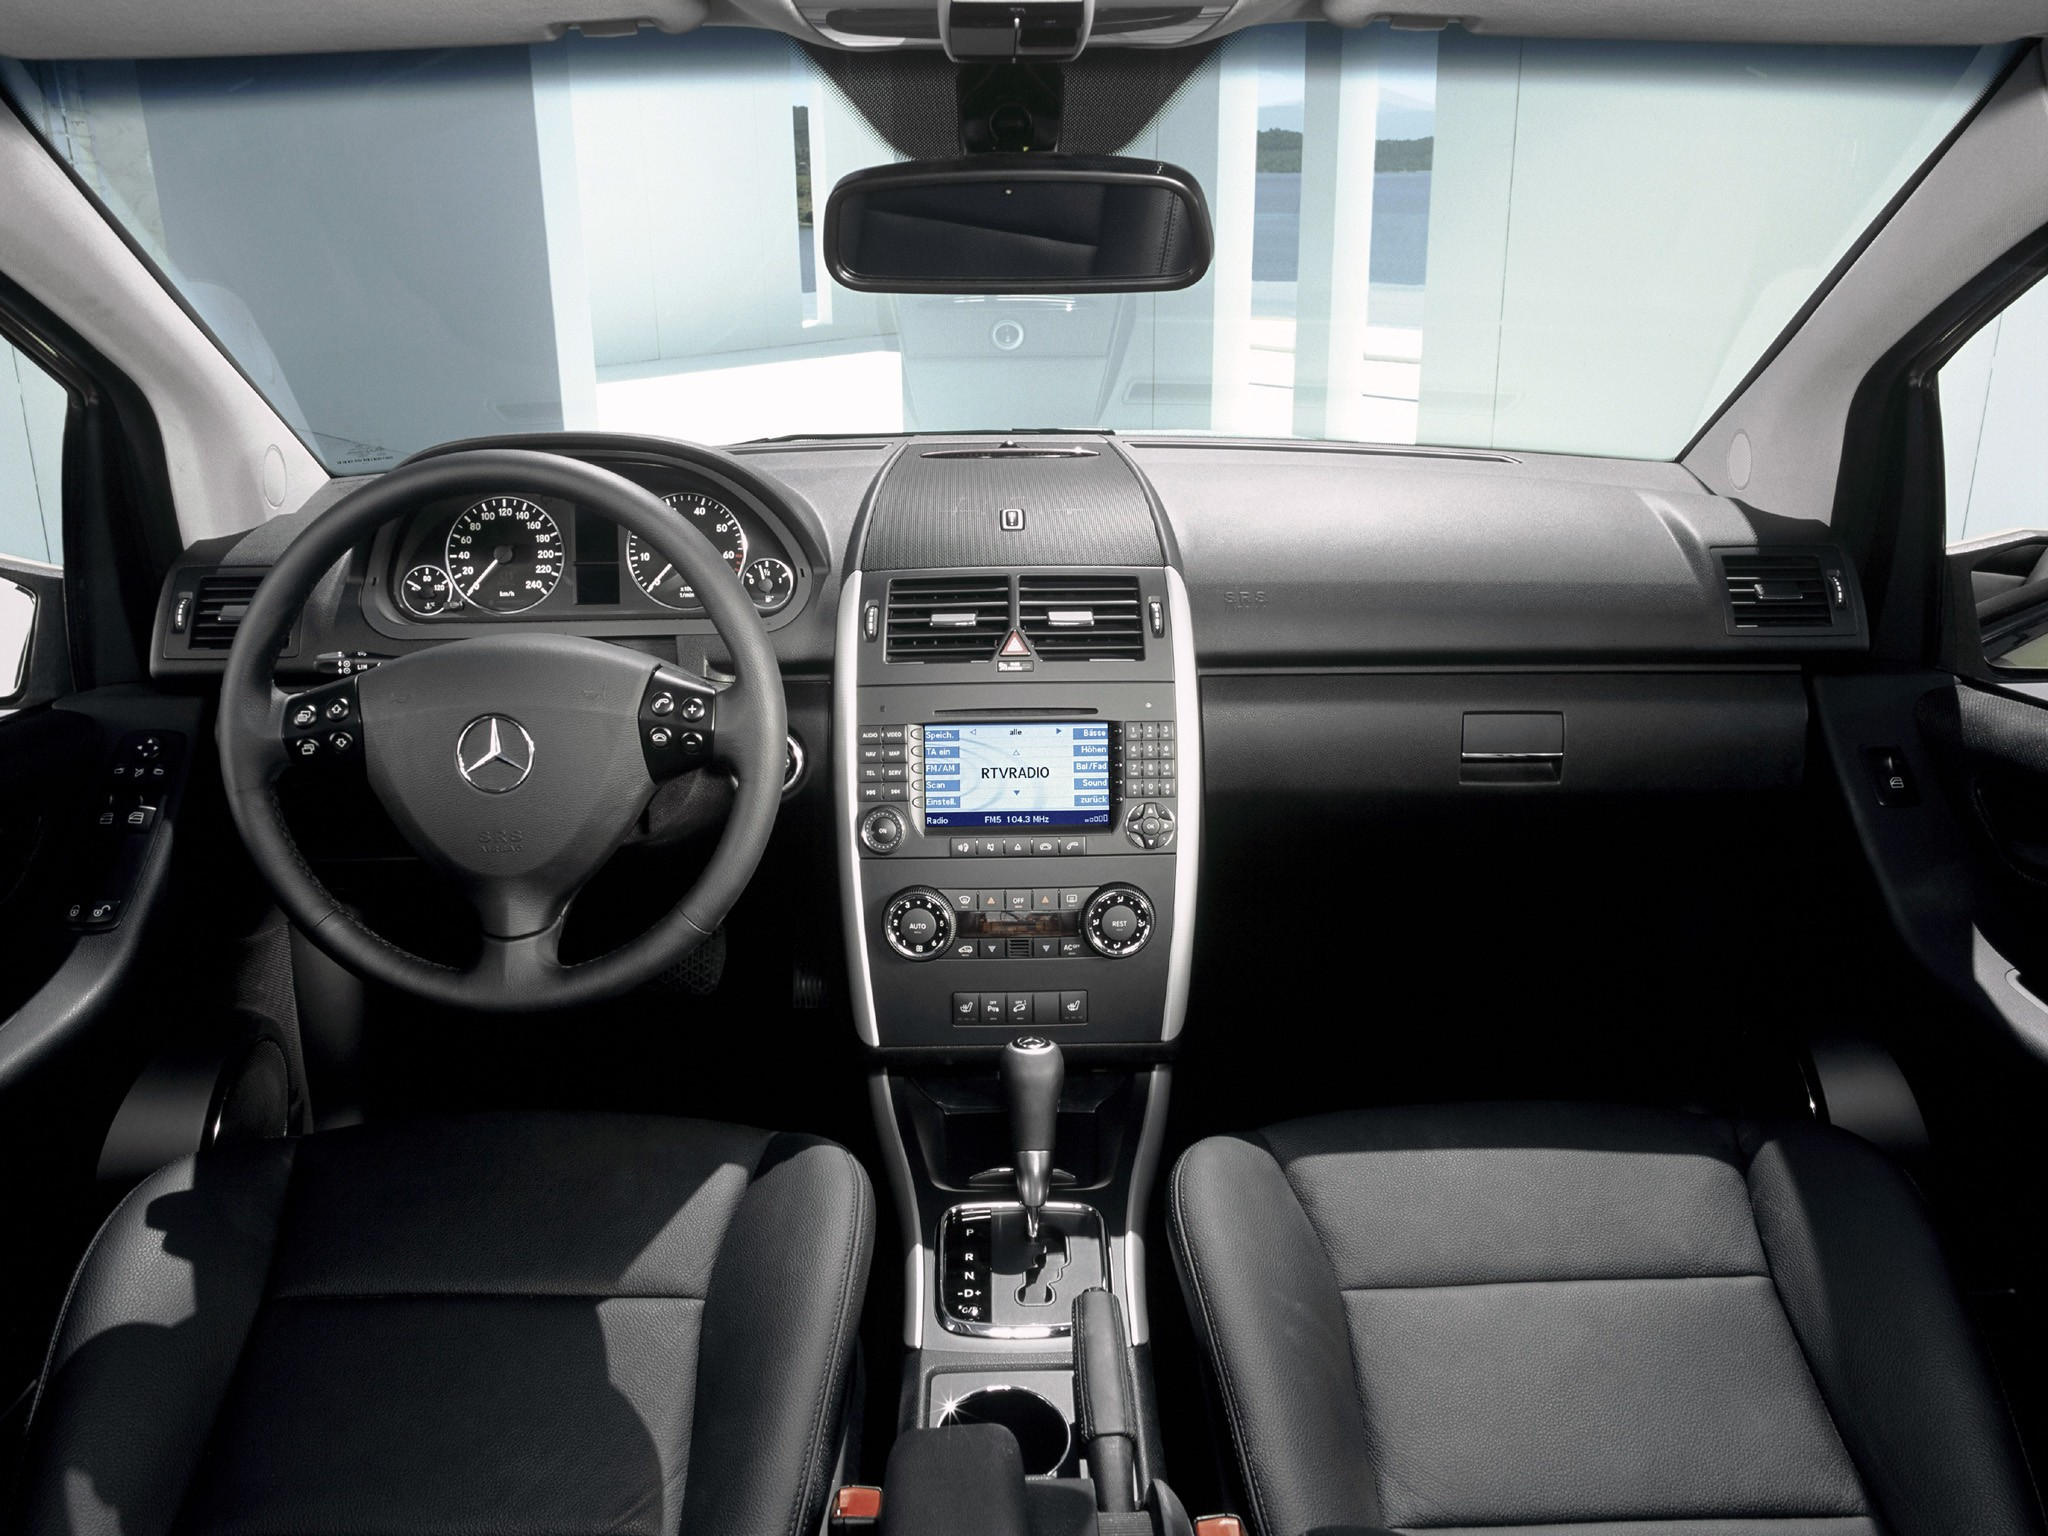 mercedes benz a class w169 facelift 2008 a 160 cdi. Black Bedroom Furniture Sets. Home Design Ideas